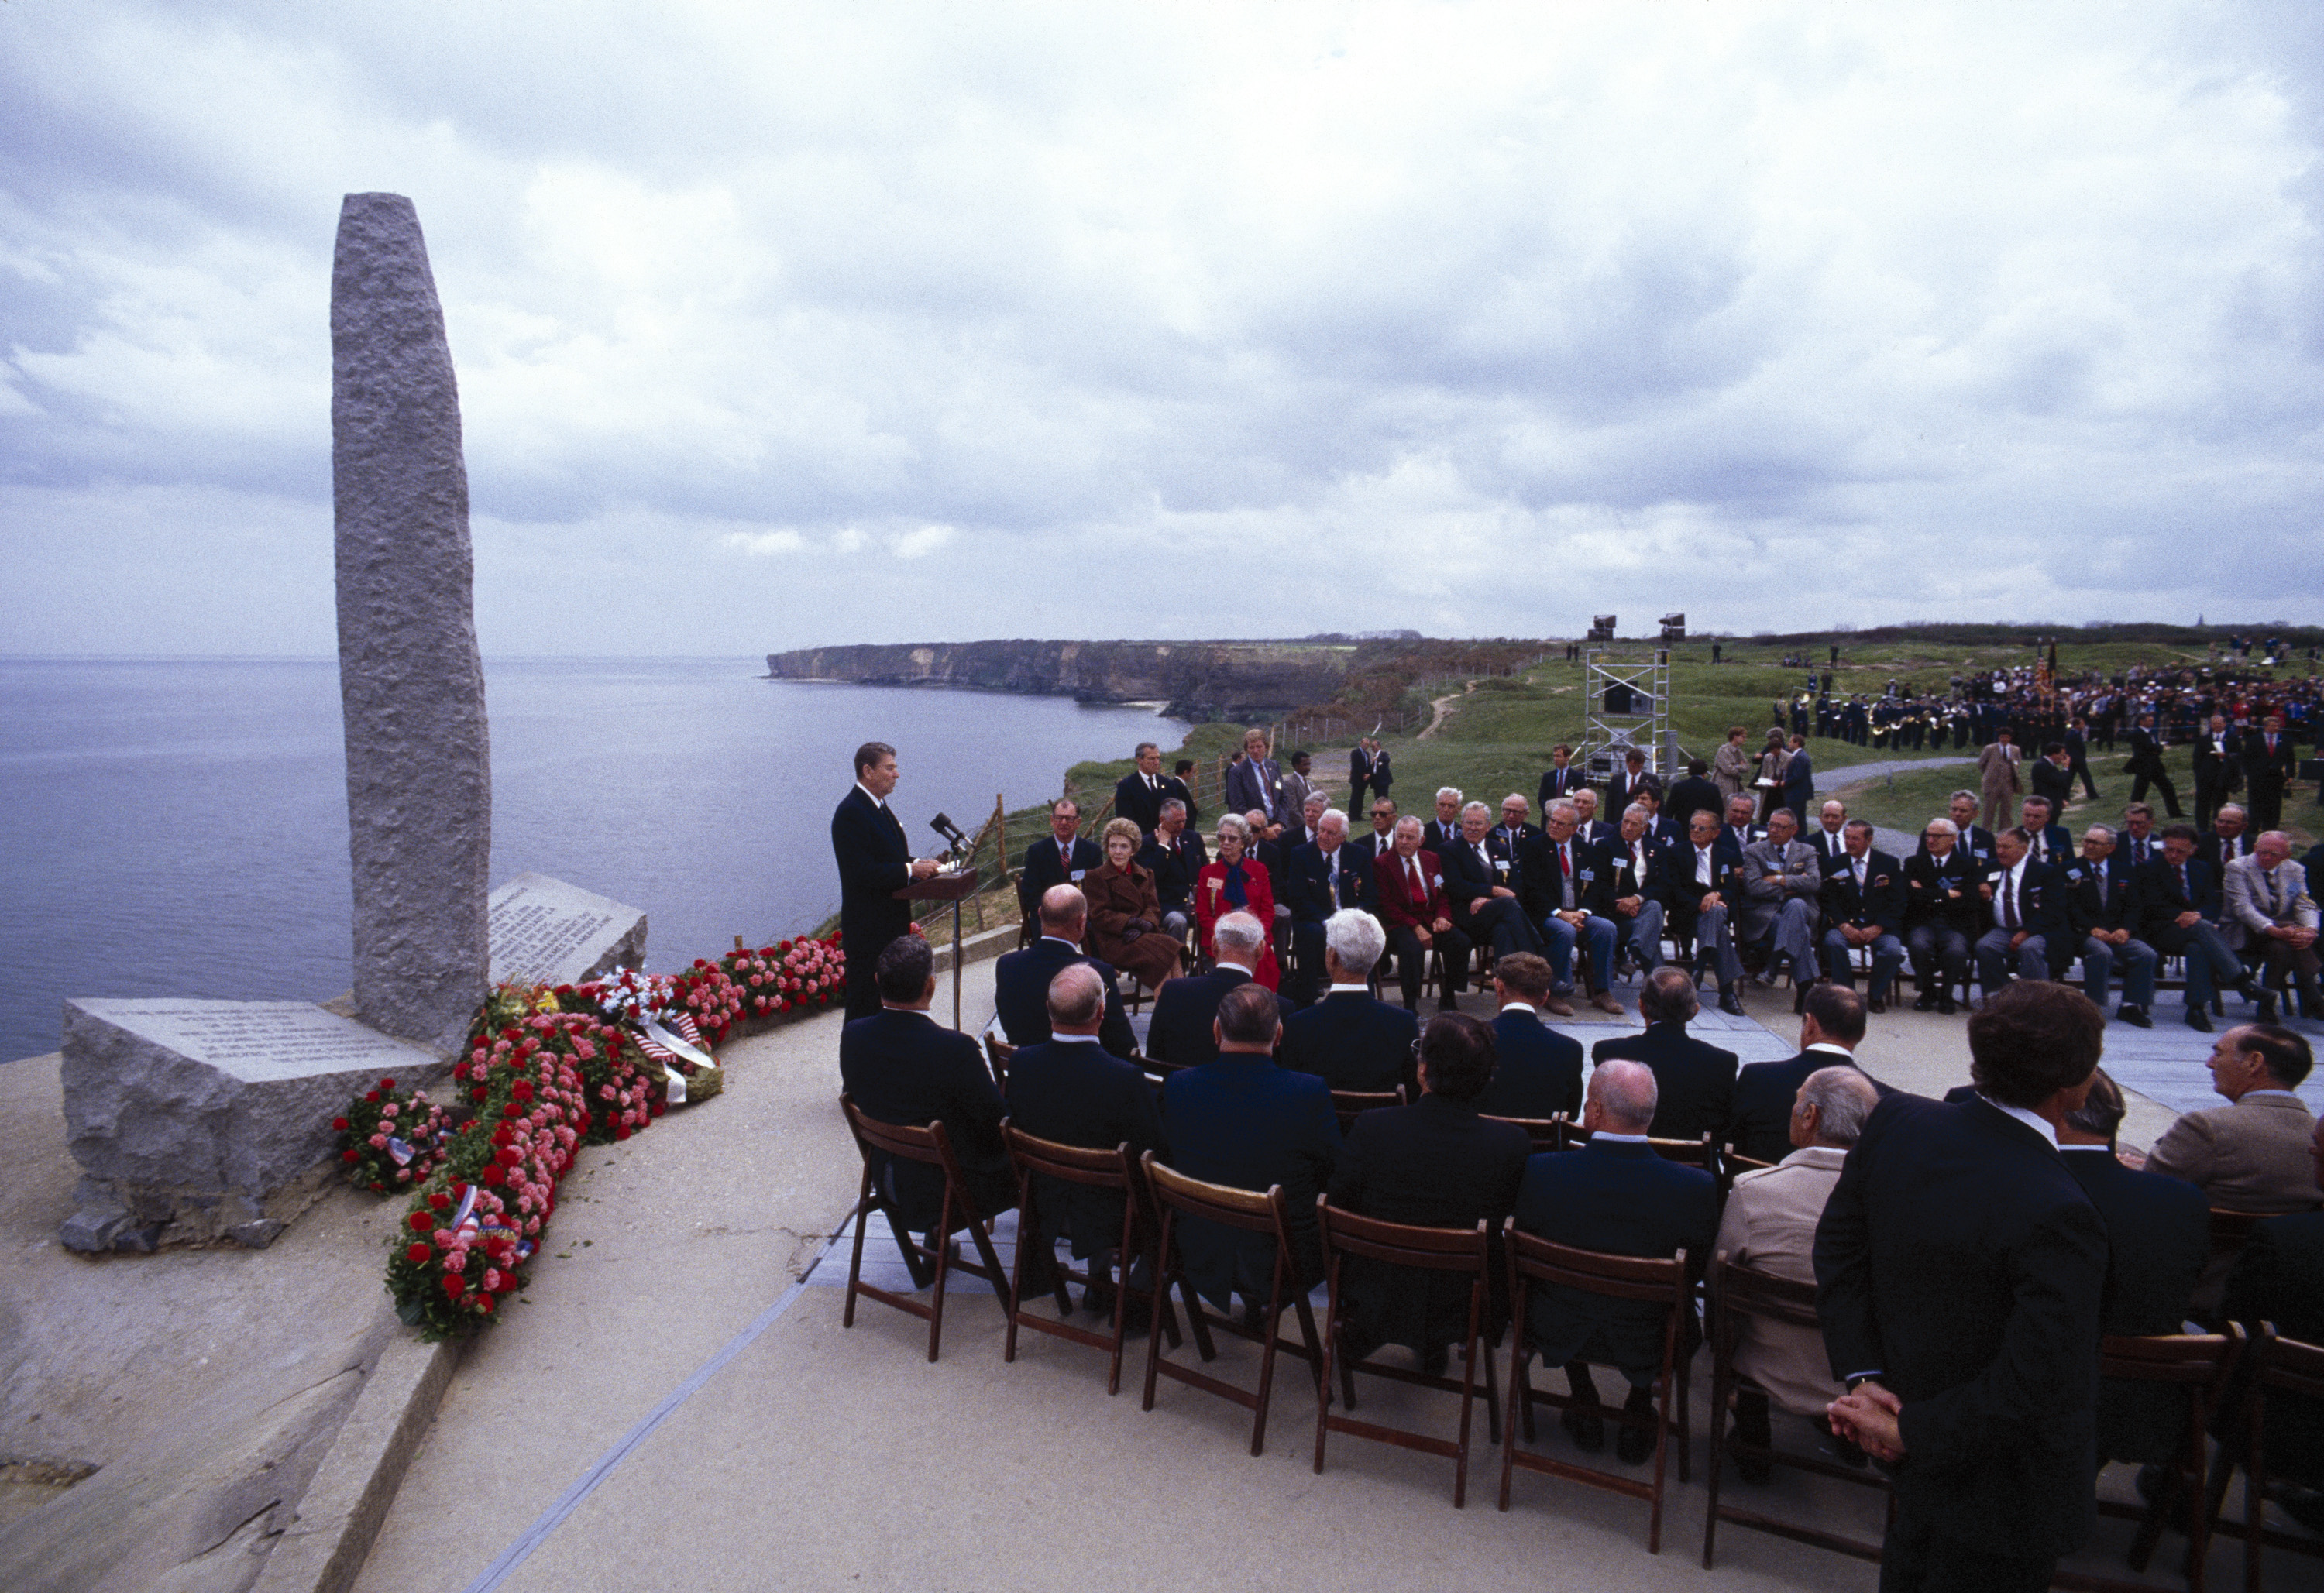 One of two speeches U.S. President Ronald Reagan gave commemorating the 40th Anniversary of the 1944 D-Day Invasion. (Credit: David Hume Kennerly/Getty Images)